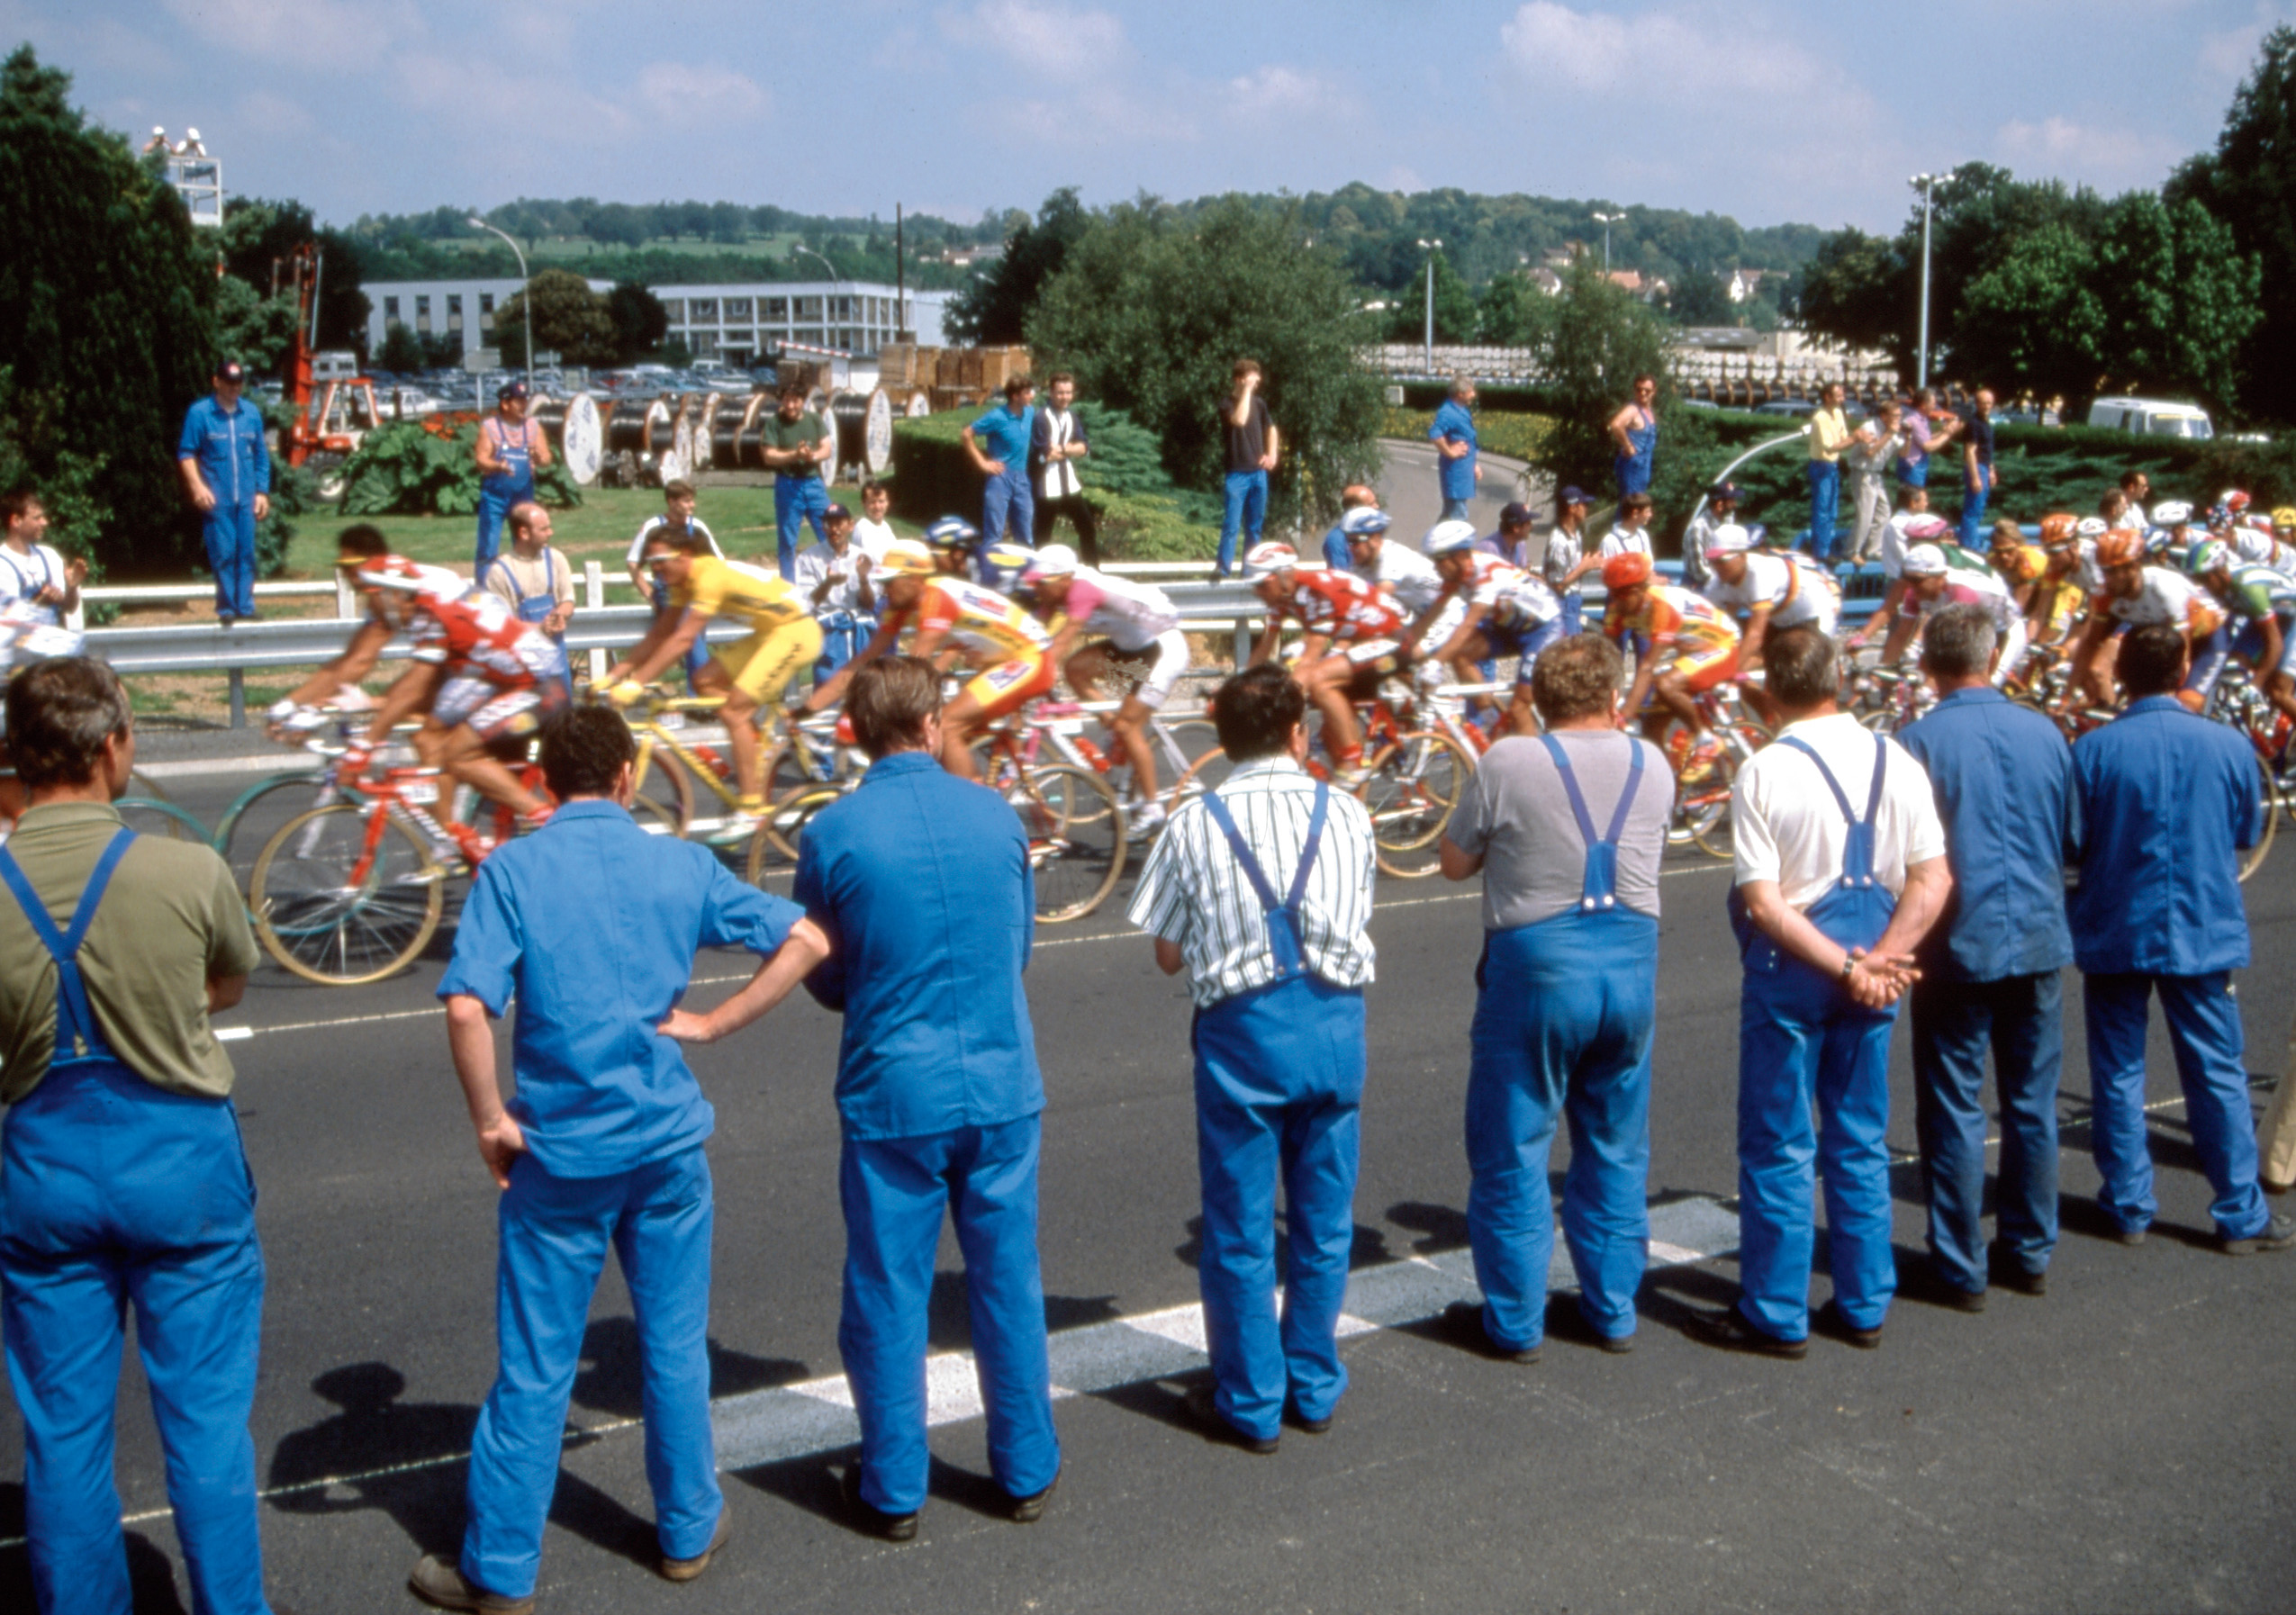 """I was out on the course and there was nothing. Then all of a sudden the road came up on a factory, and there was a sea of workers in blue uniforms. It was perfect -- the pattern of the blue bibs,"" says Startt about this photo from the 1997 Tour."